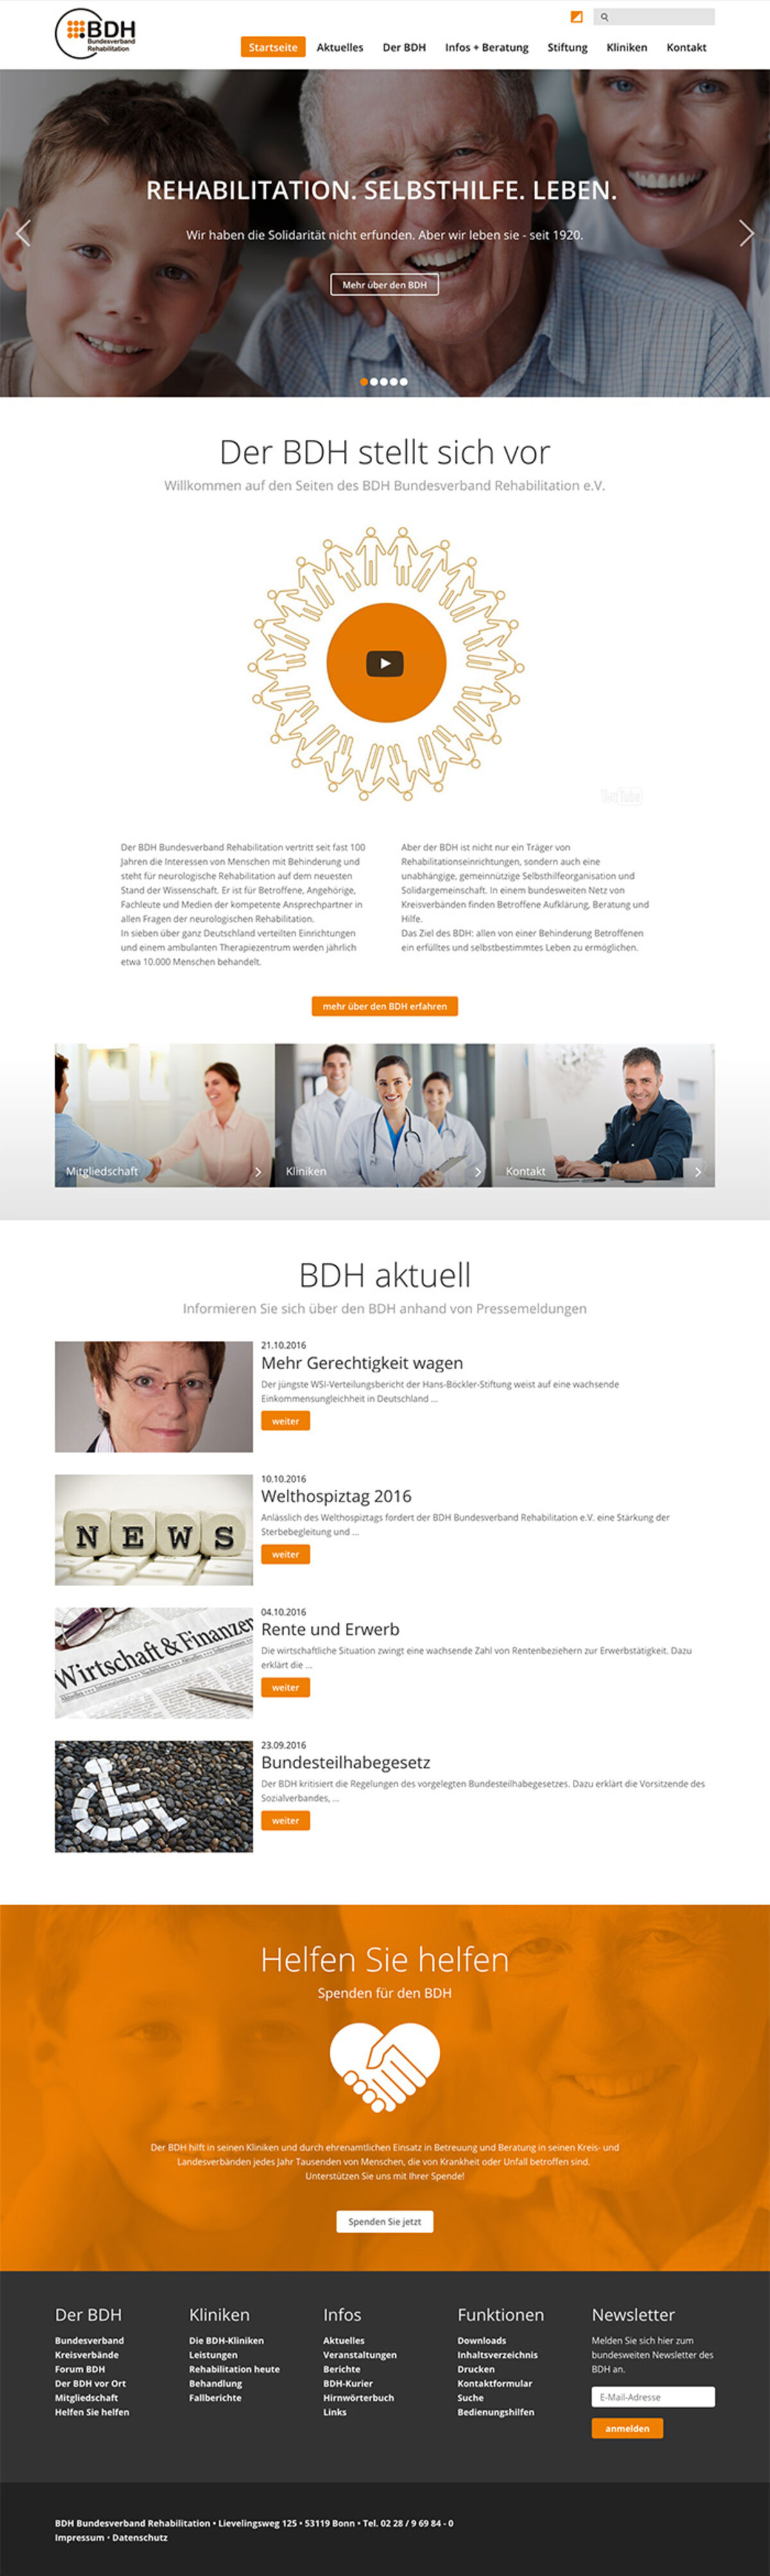 BDH Bundesverband Rehabilitation